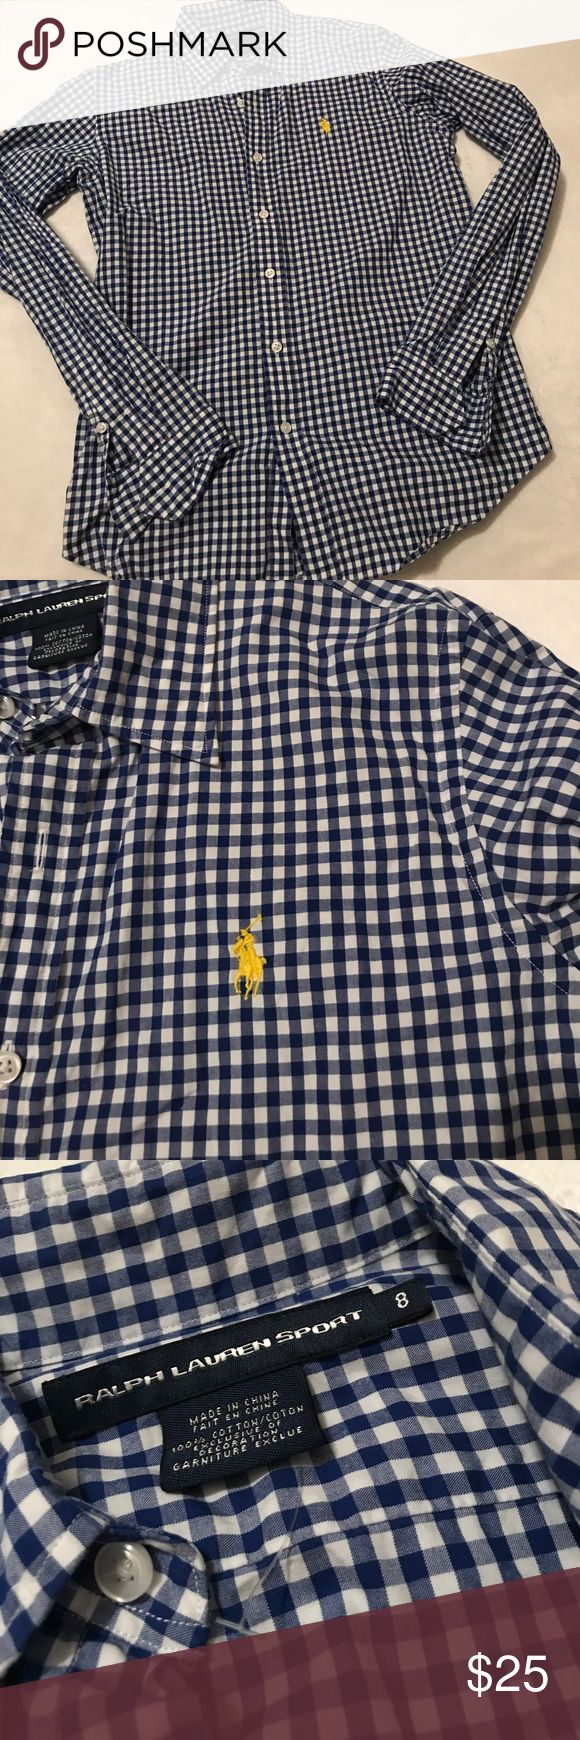 Preppy blue/white Ladies button up Preppy blue/white Ladies button up. Looks great with jeans and boots or denim skirt and sandals. Very classy and timeless piece. Ladies size 8. Excellent condition! Smoke free home Polo by Ralph Lauren Tops Button Down Shirts